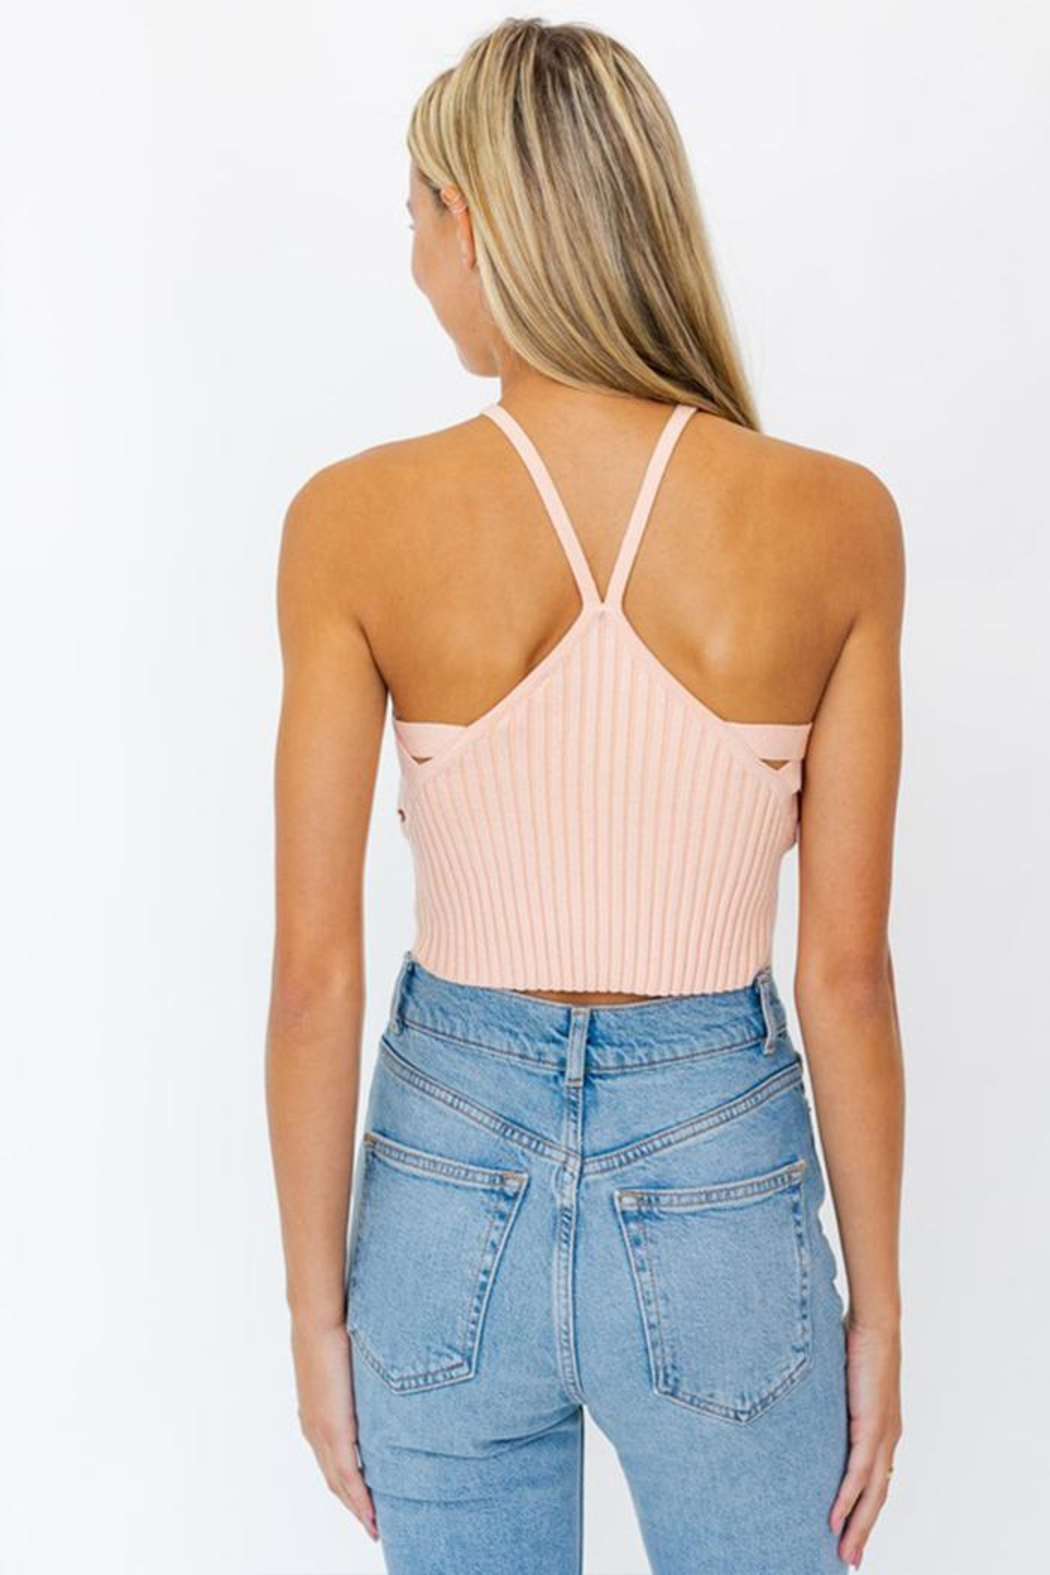 Le Lis Side-Detailed Cropped Top - Side Cropped Image